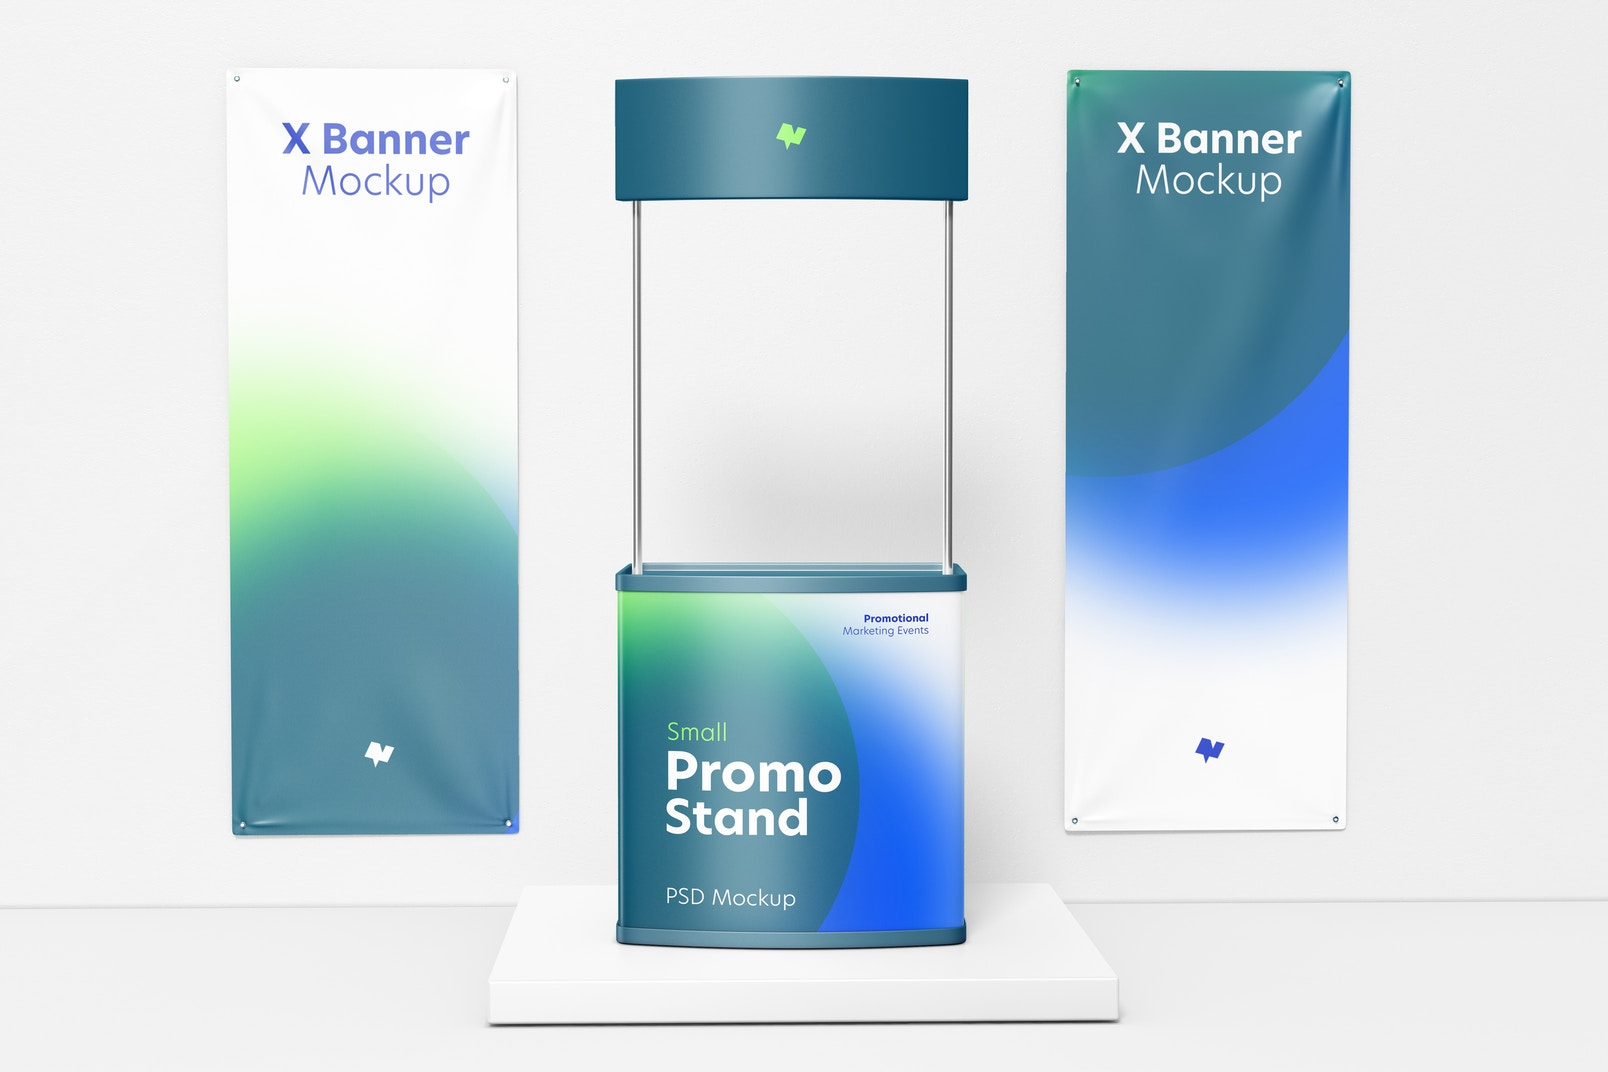 Small Promo Stand with X Banners Mockup